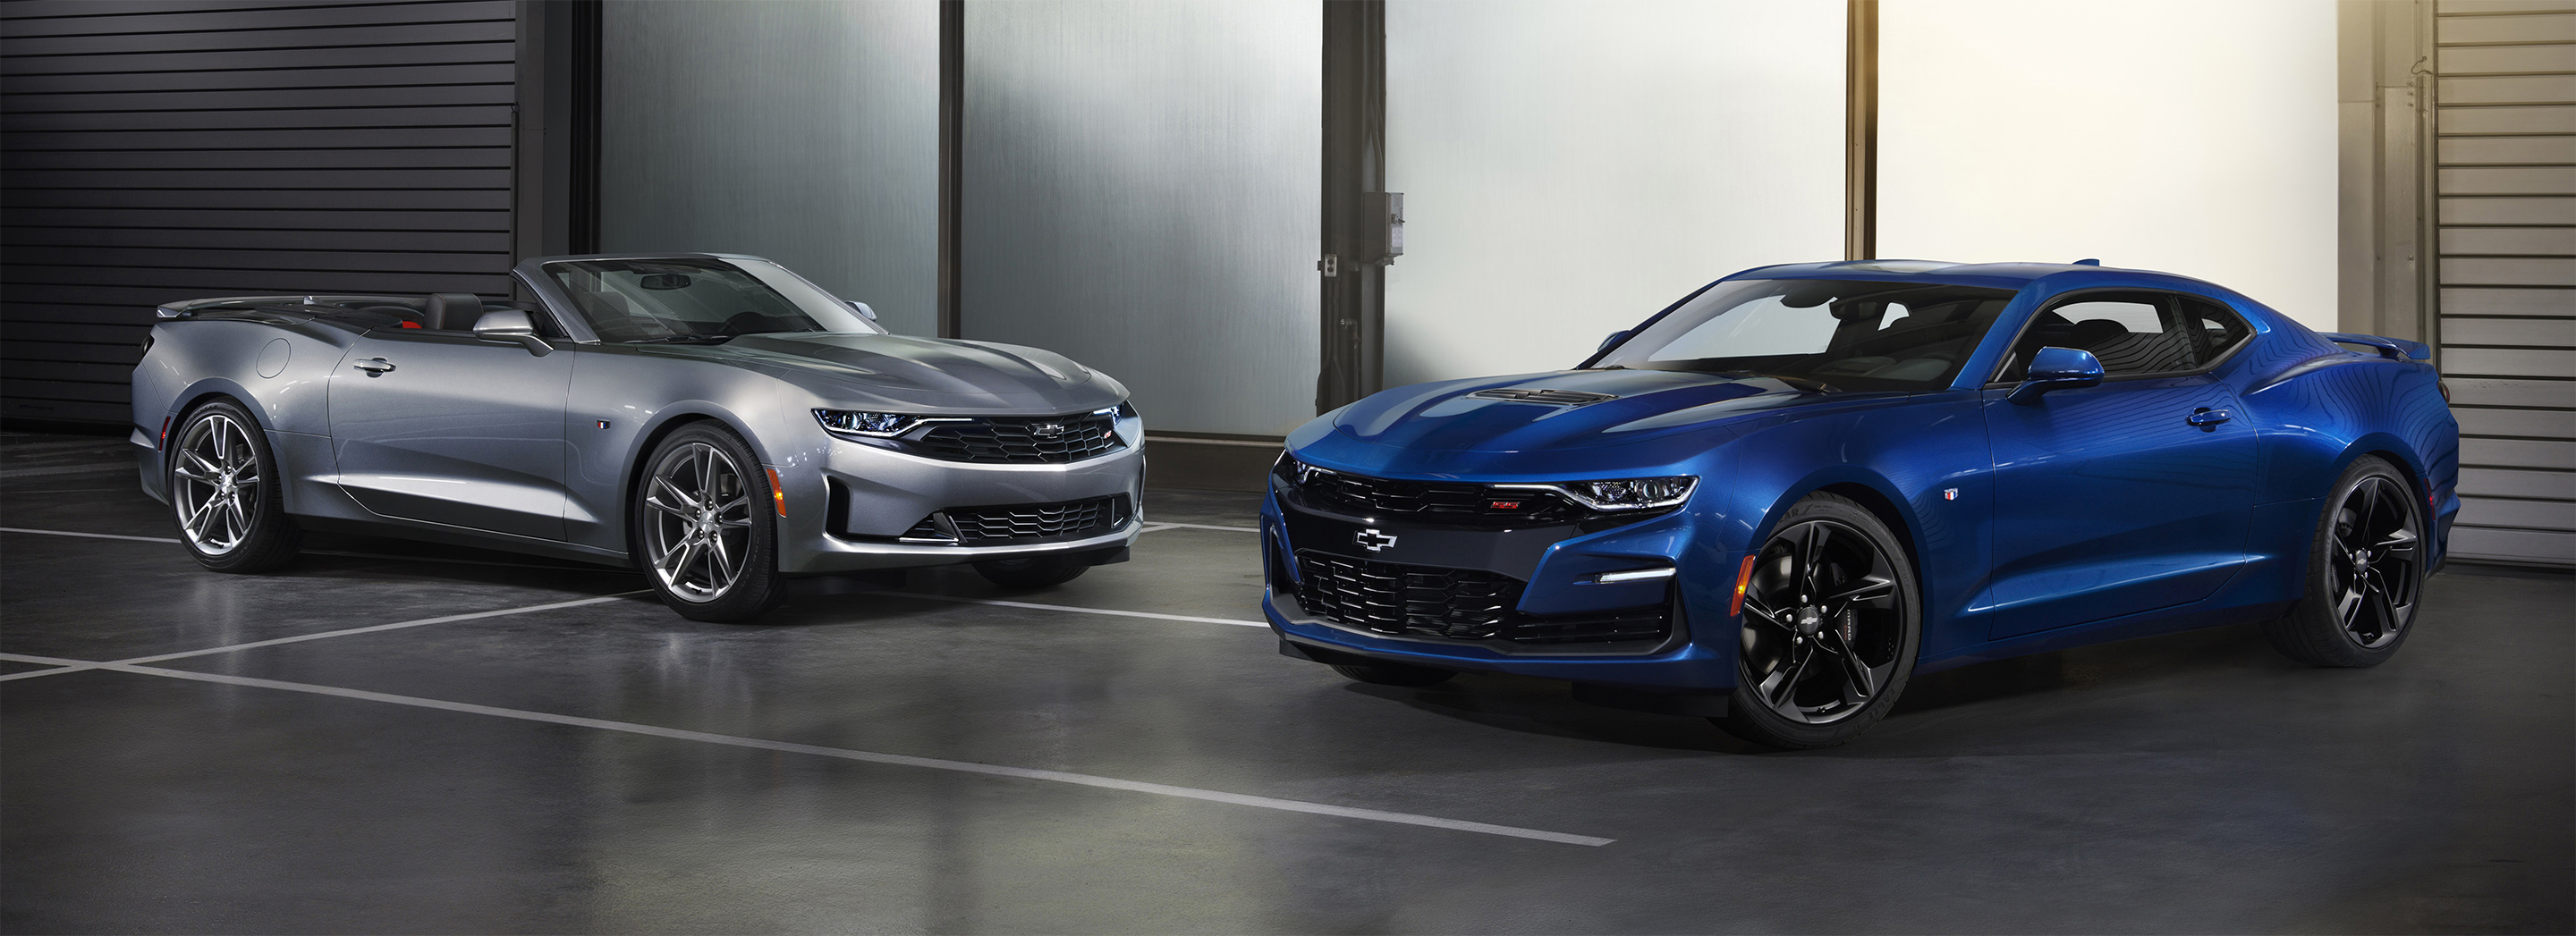 TrackWorthy - 2019 Chevrolet Camaro RS and SS